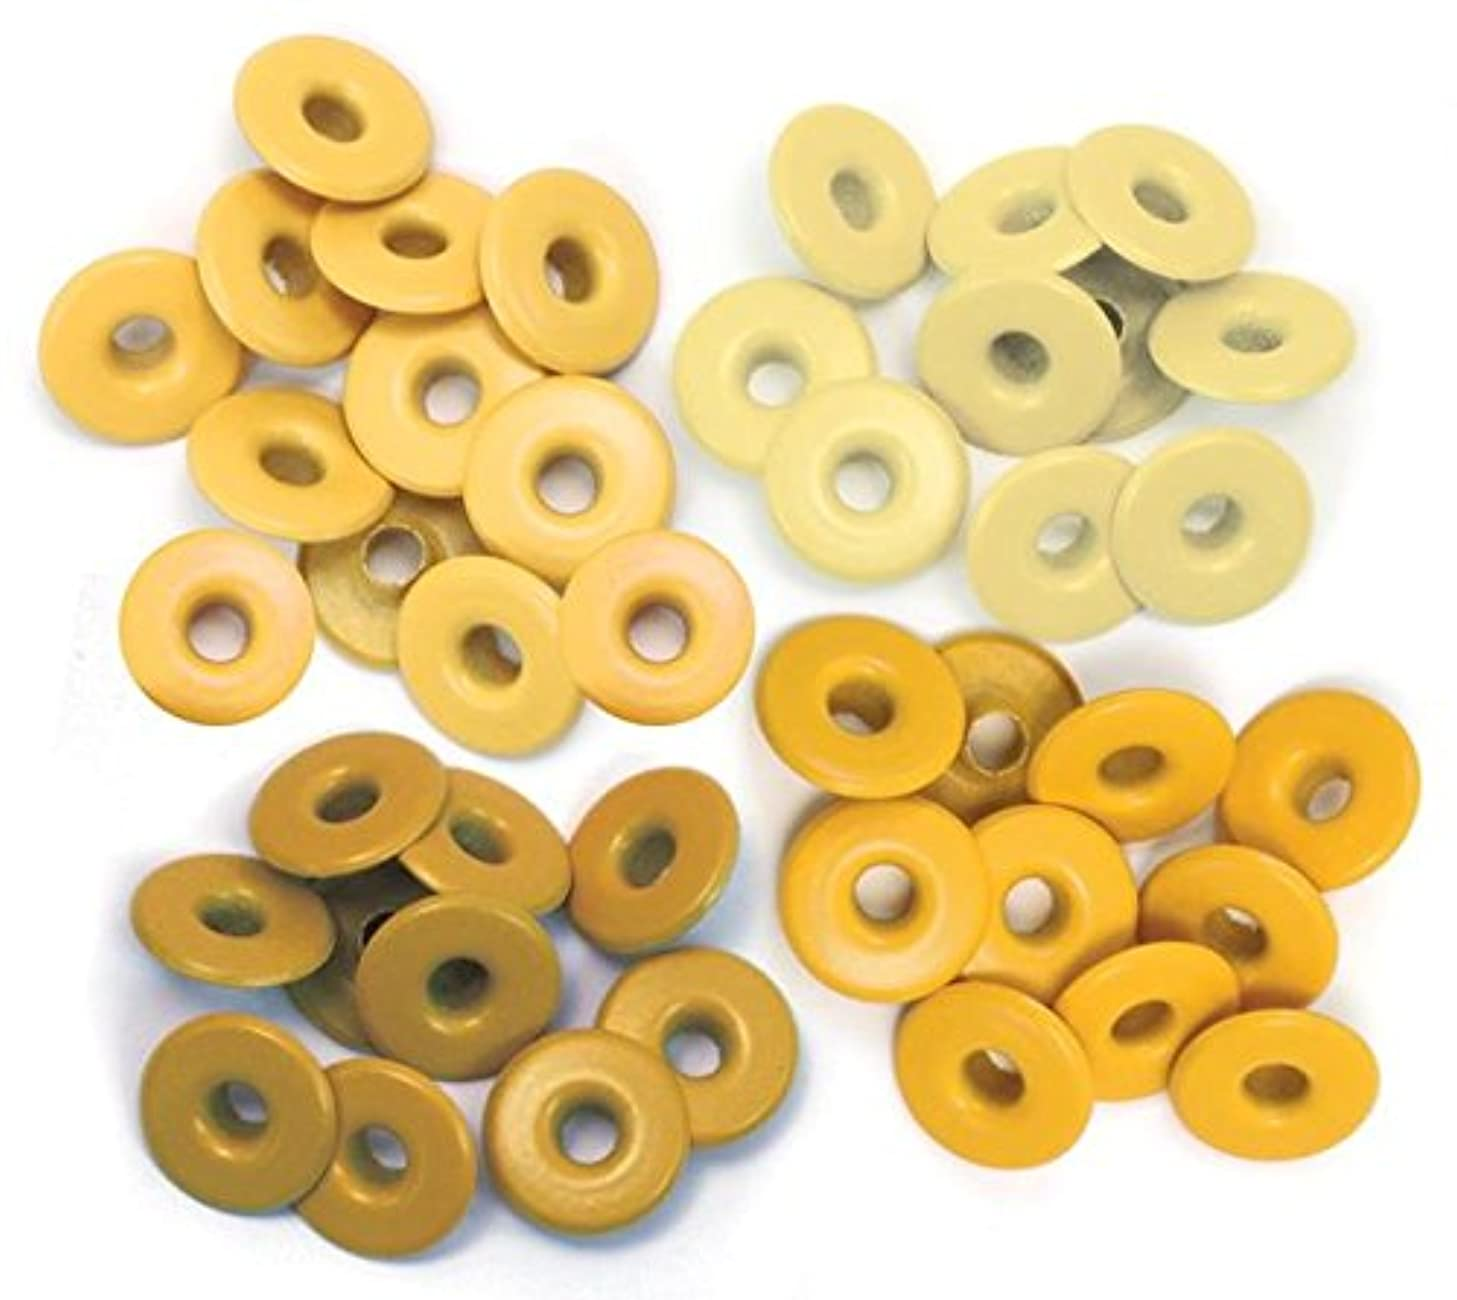 We R Memory Keepers 41587-9 Eyelets for Scrapbooking, Wide, Yellow